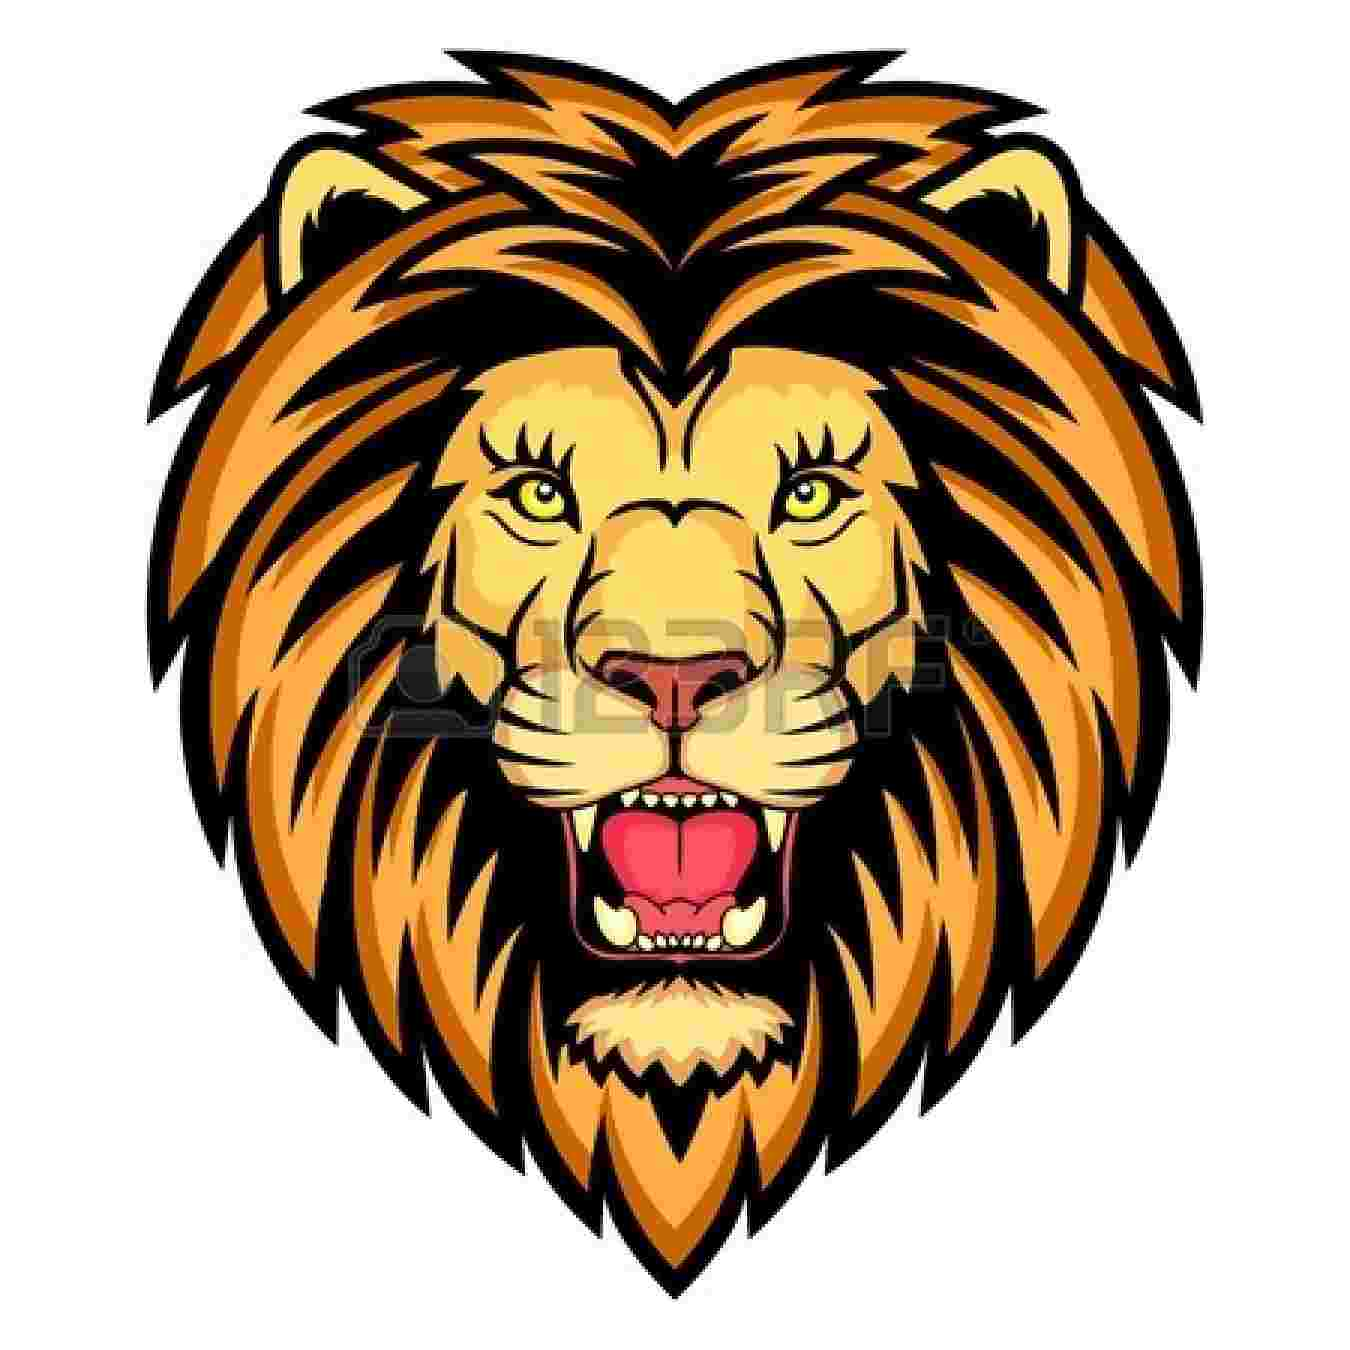 Cliparts Library: Clipart Head Lion.